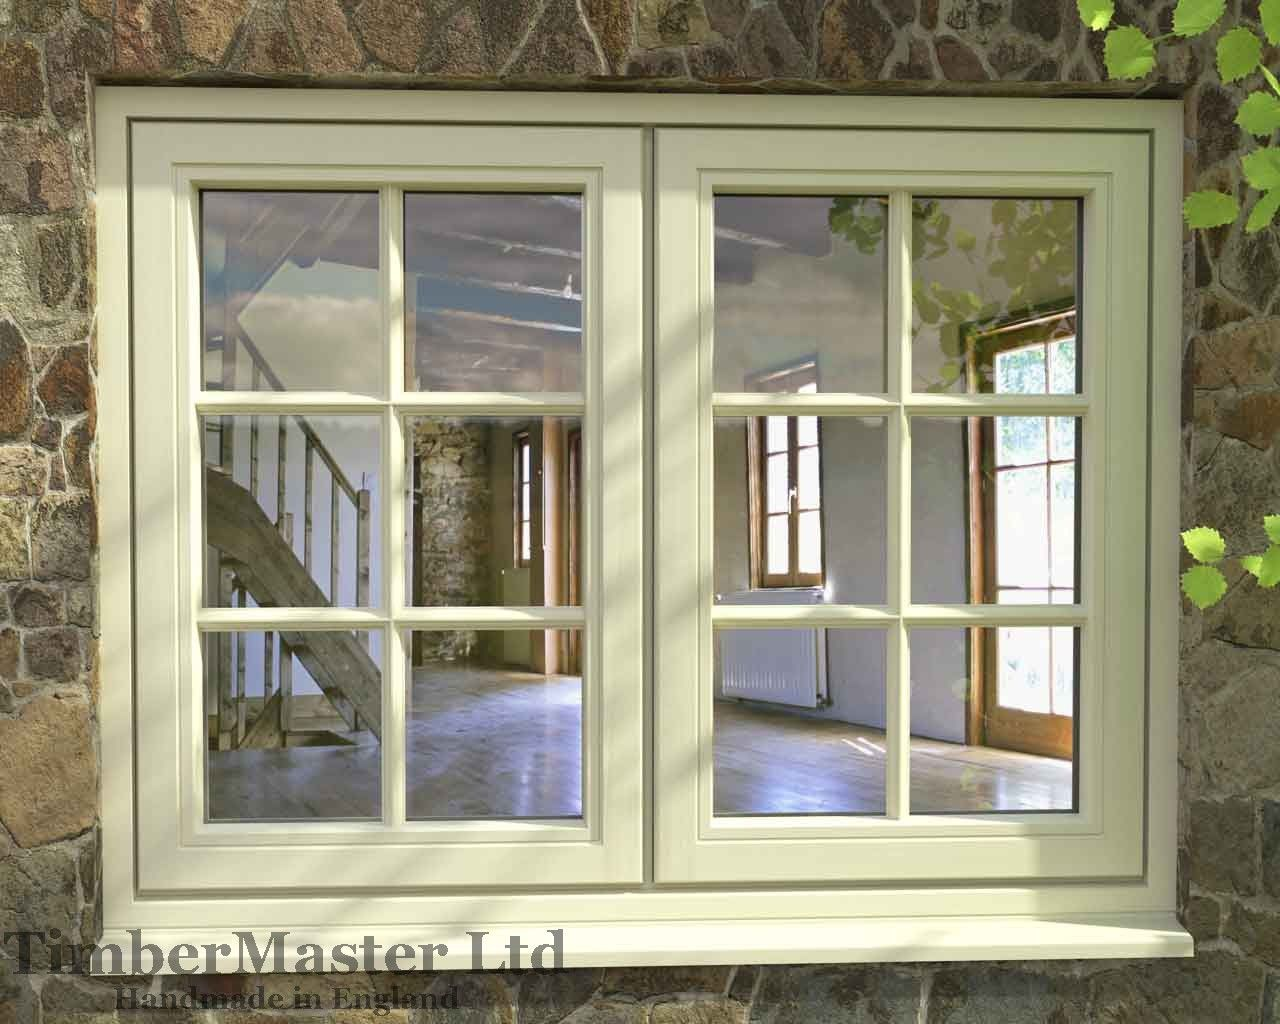 timber conservatory windows designs fence style astonishing wood country ideas design modern furniture leanto cottage decor